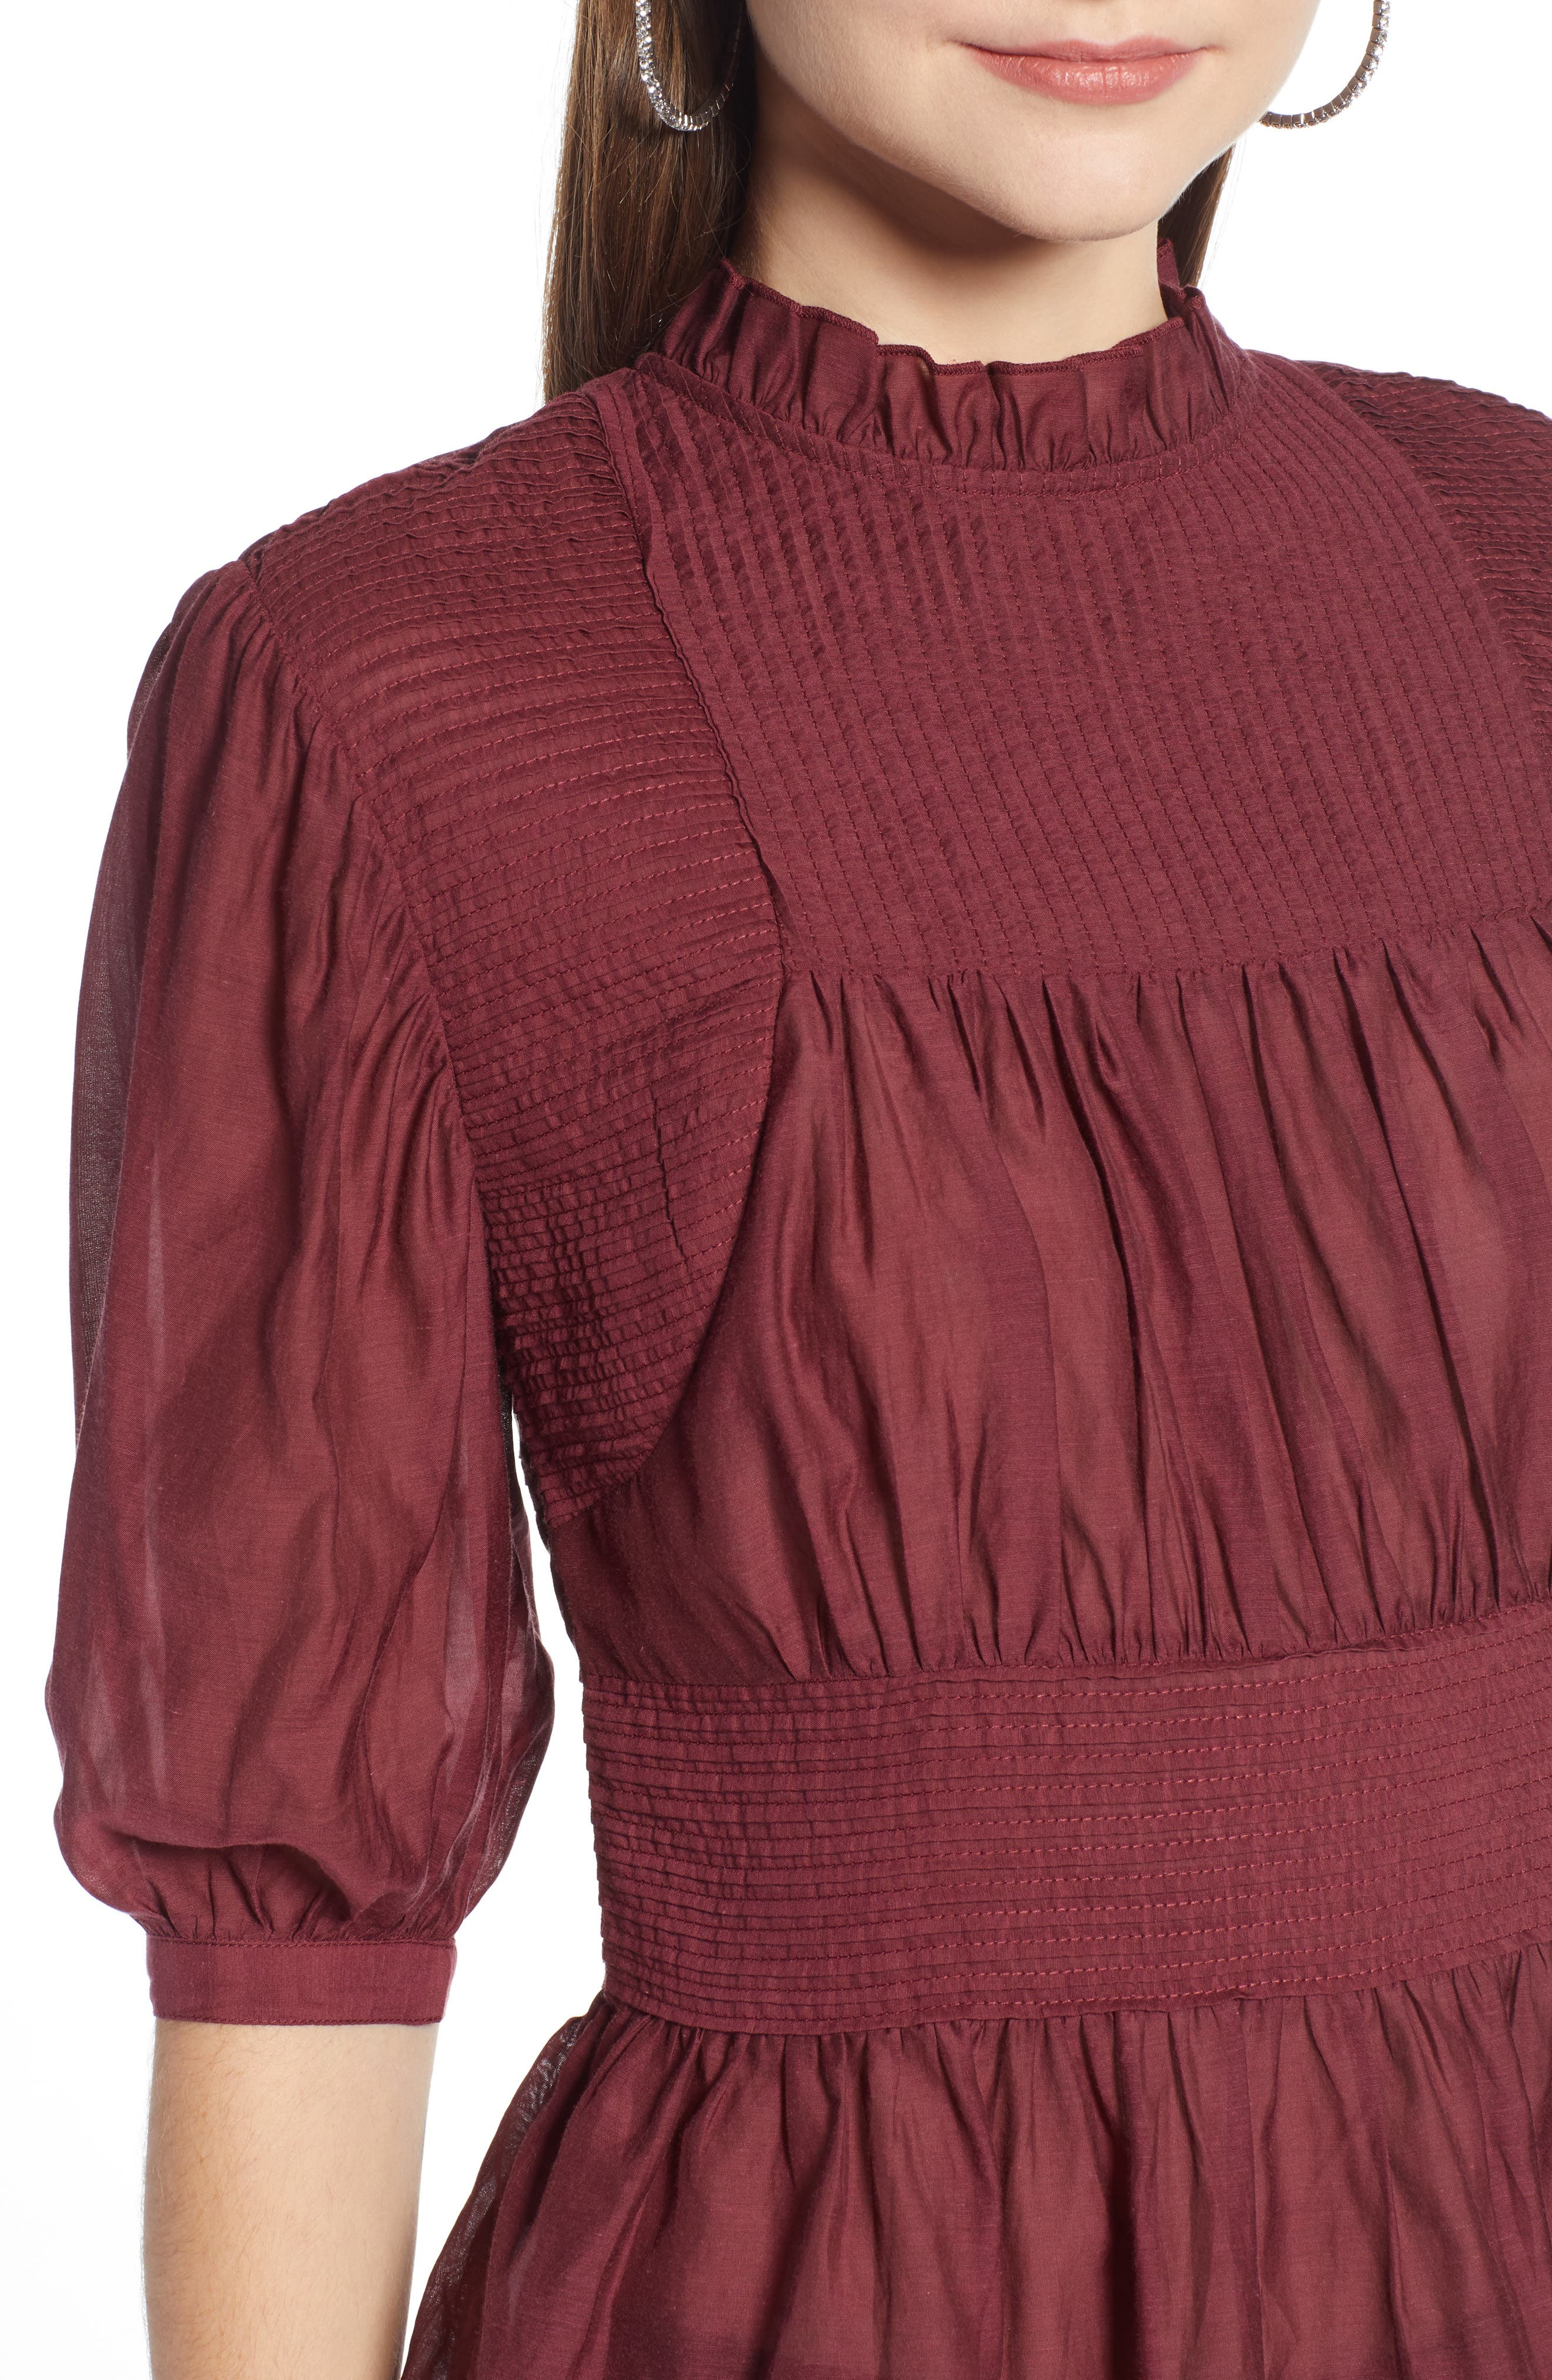 Pleated Peplum Top,                             Alternate thumbnail 4, color,                             RED TANNIN